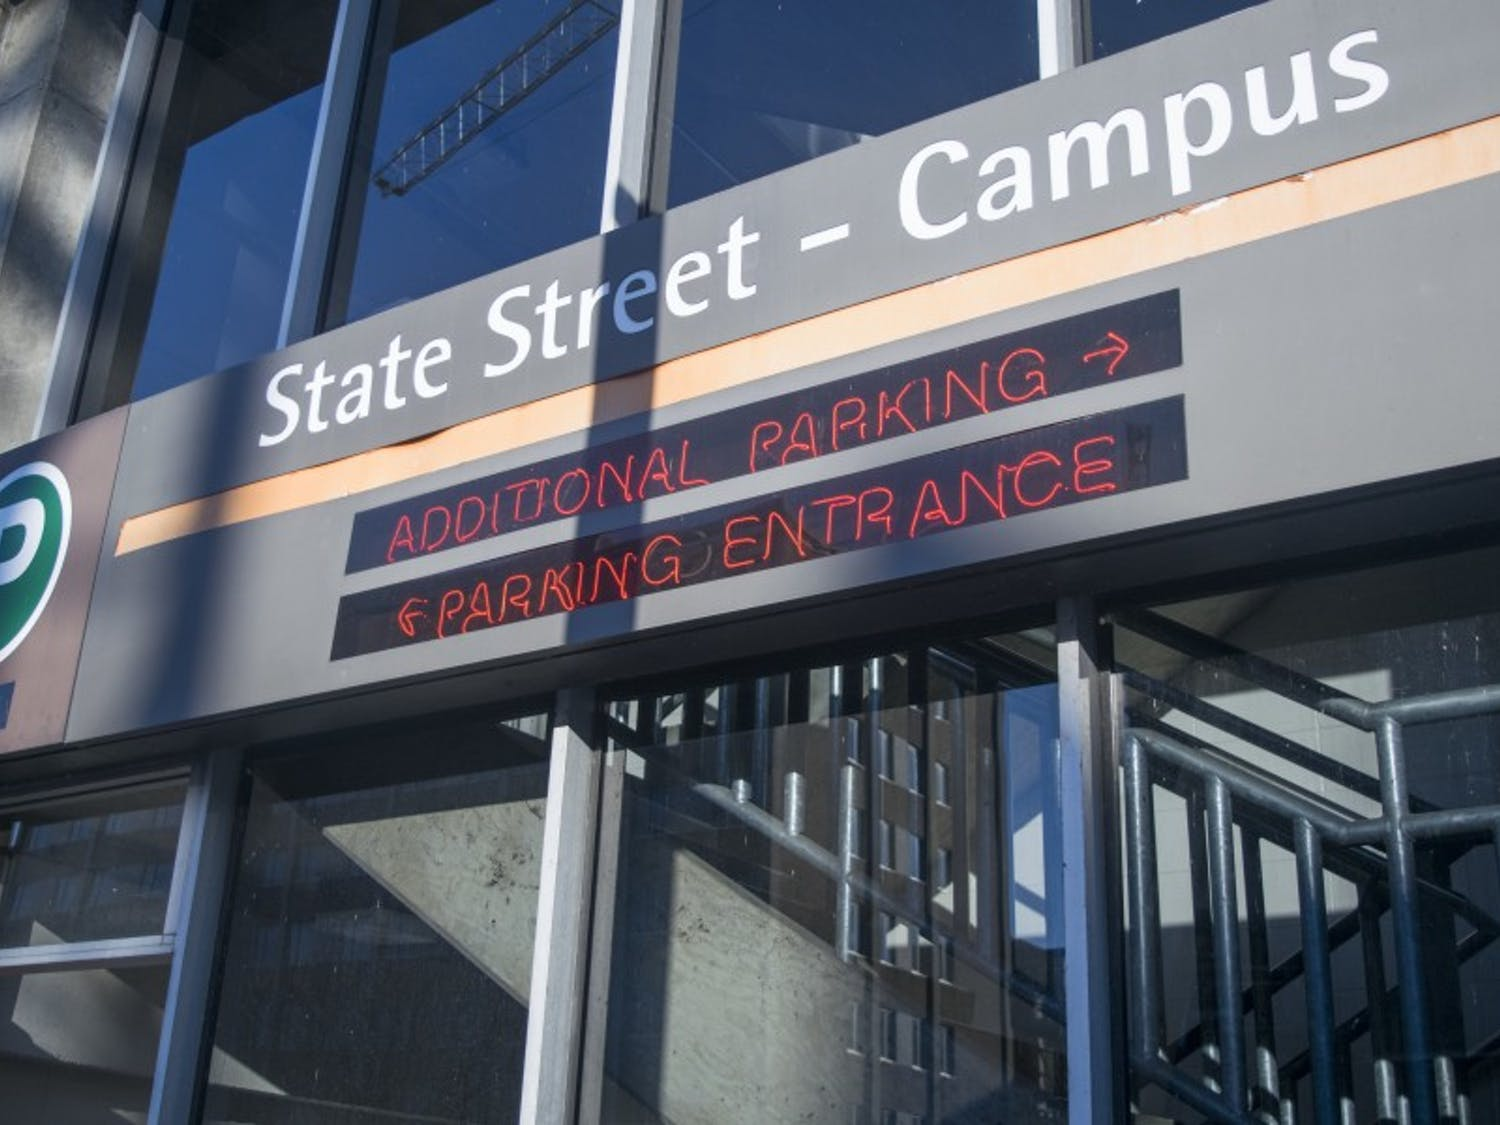 Police apprehended a suspect early Friday morning after he reportedly fired a shot in a downtown parking garage.